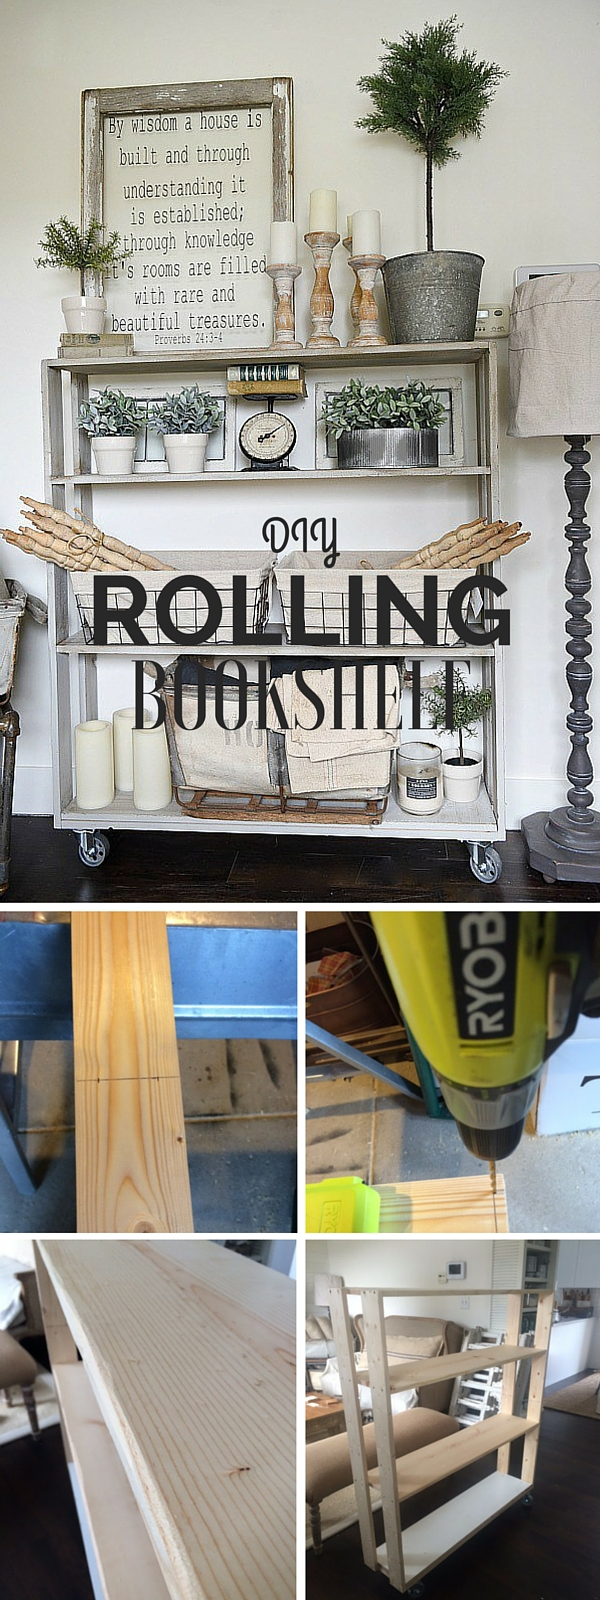 Check out the tutorial: #DIY Rolling Bookshelf